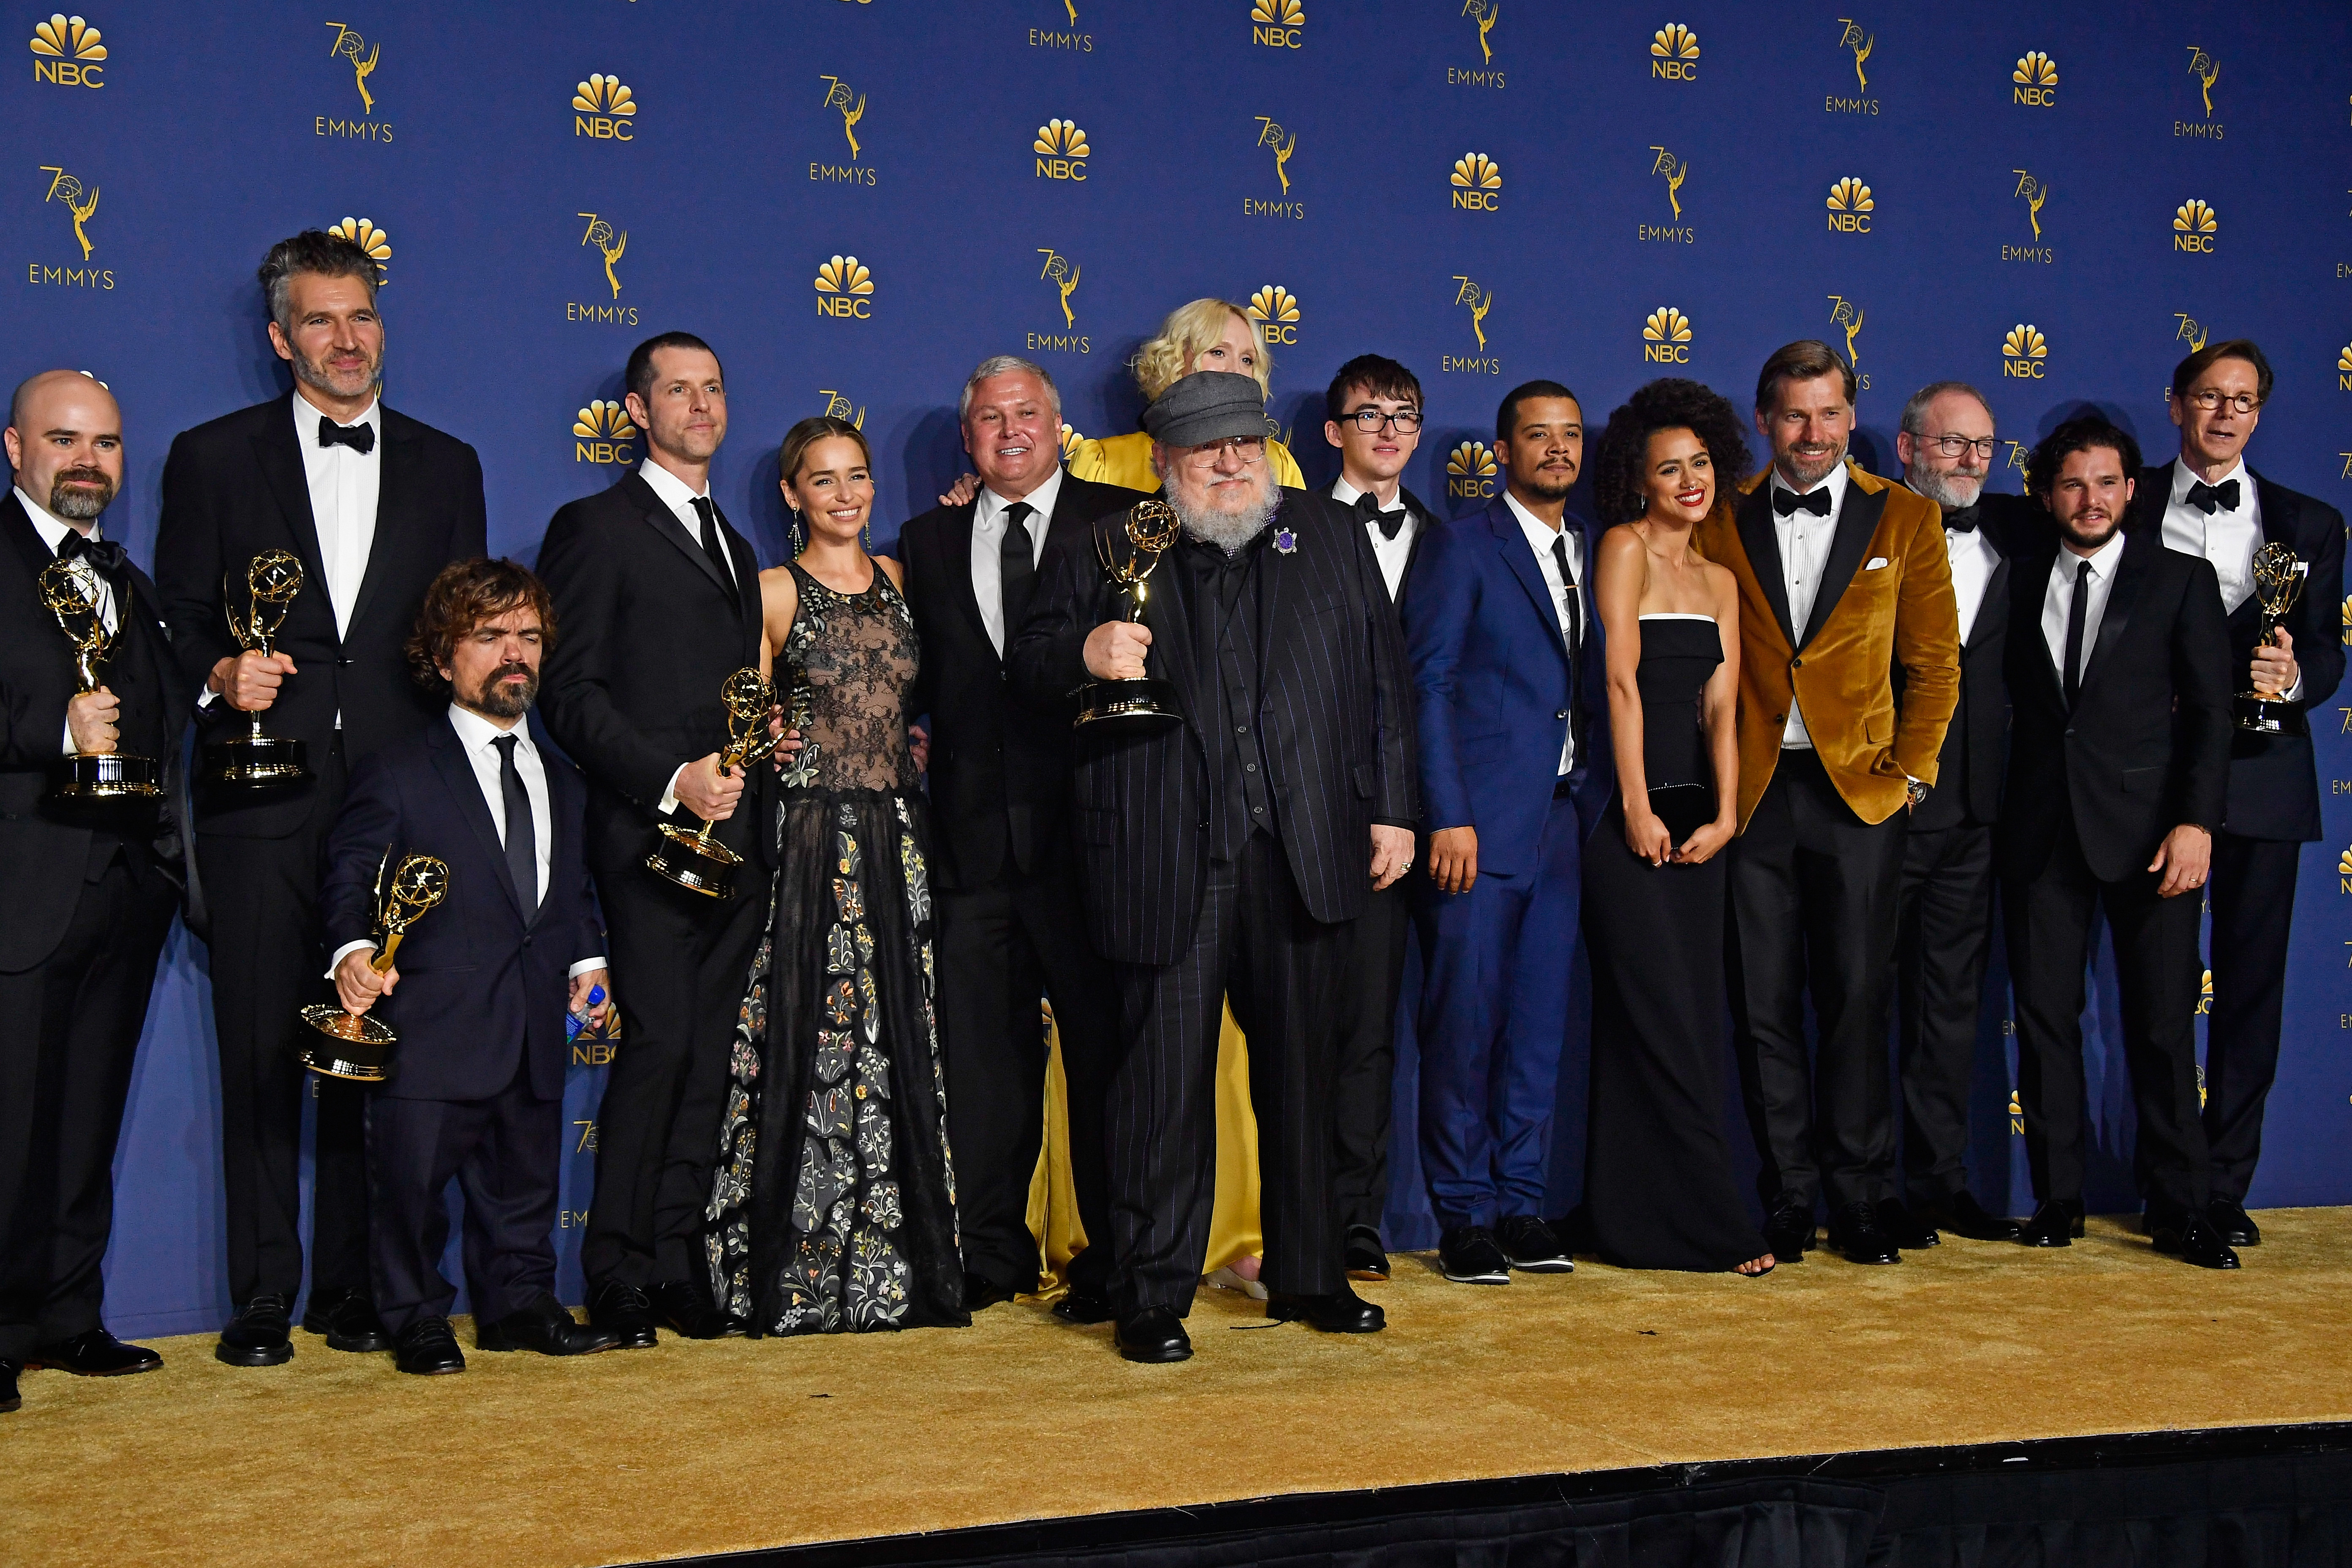 game of thrones cast George rr Martin photo